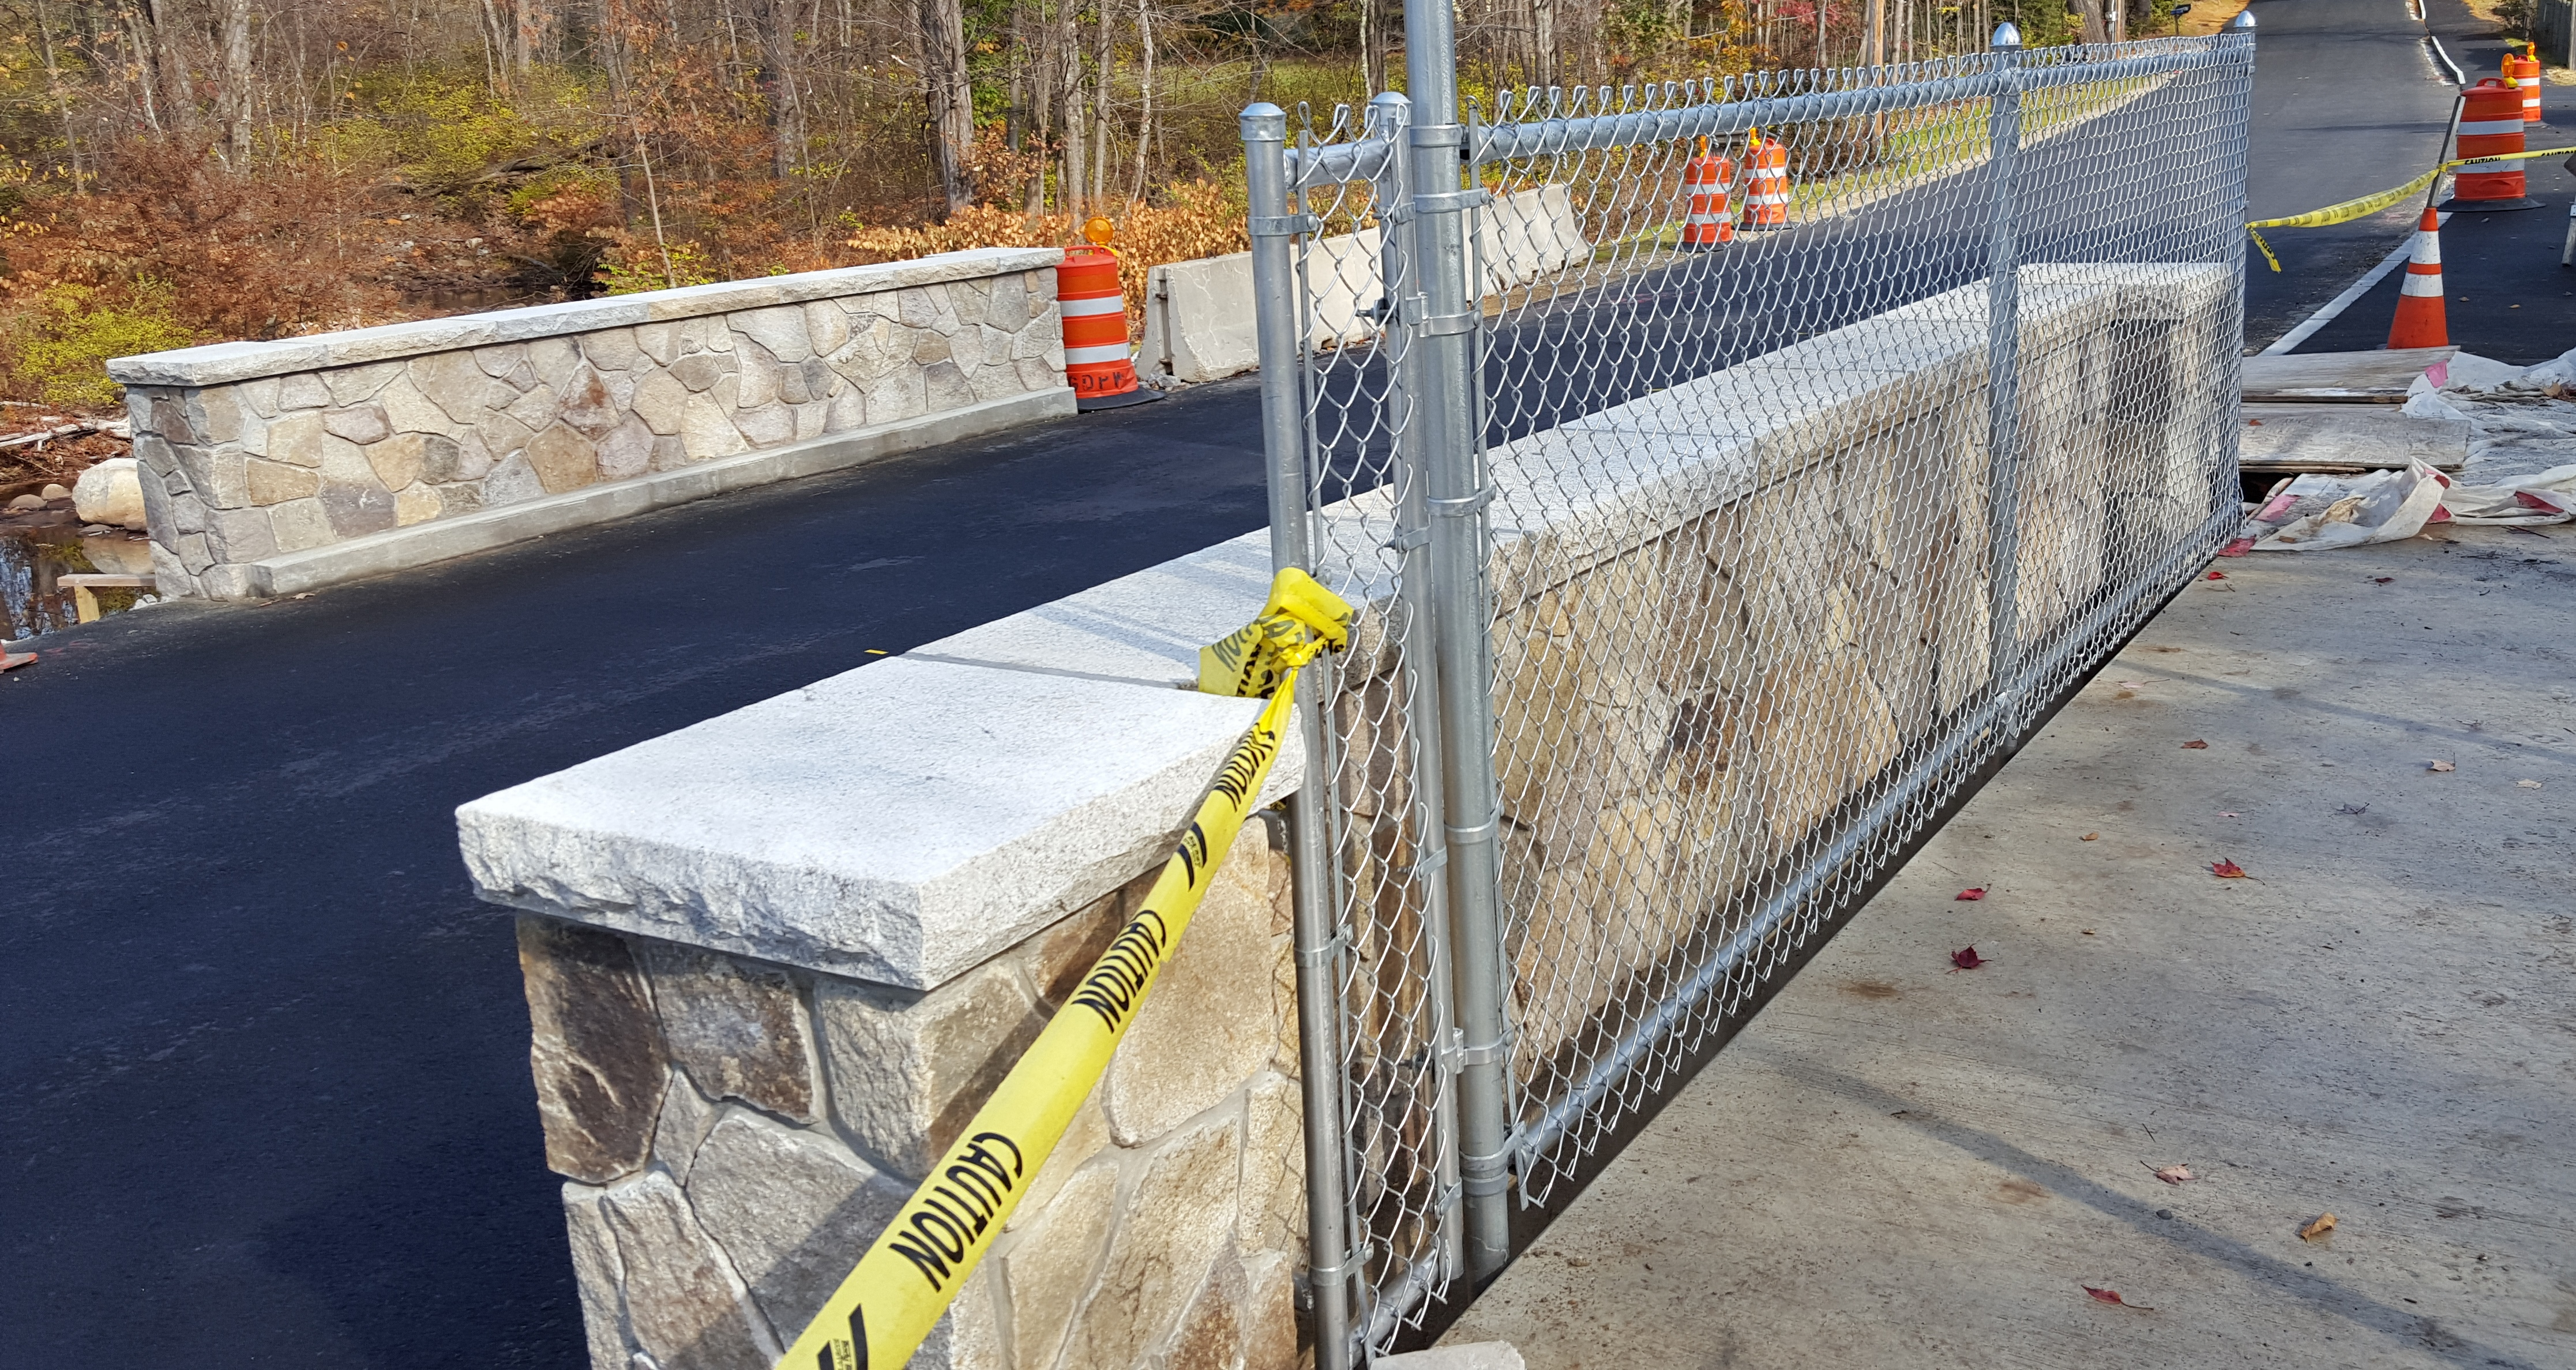 NBR Bridge fencing and curb closeups Oct 22 2015 4